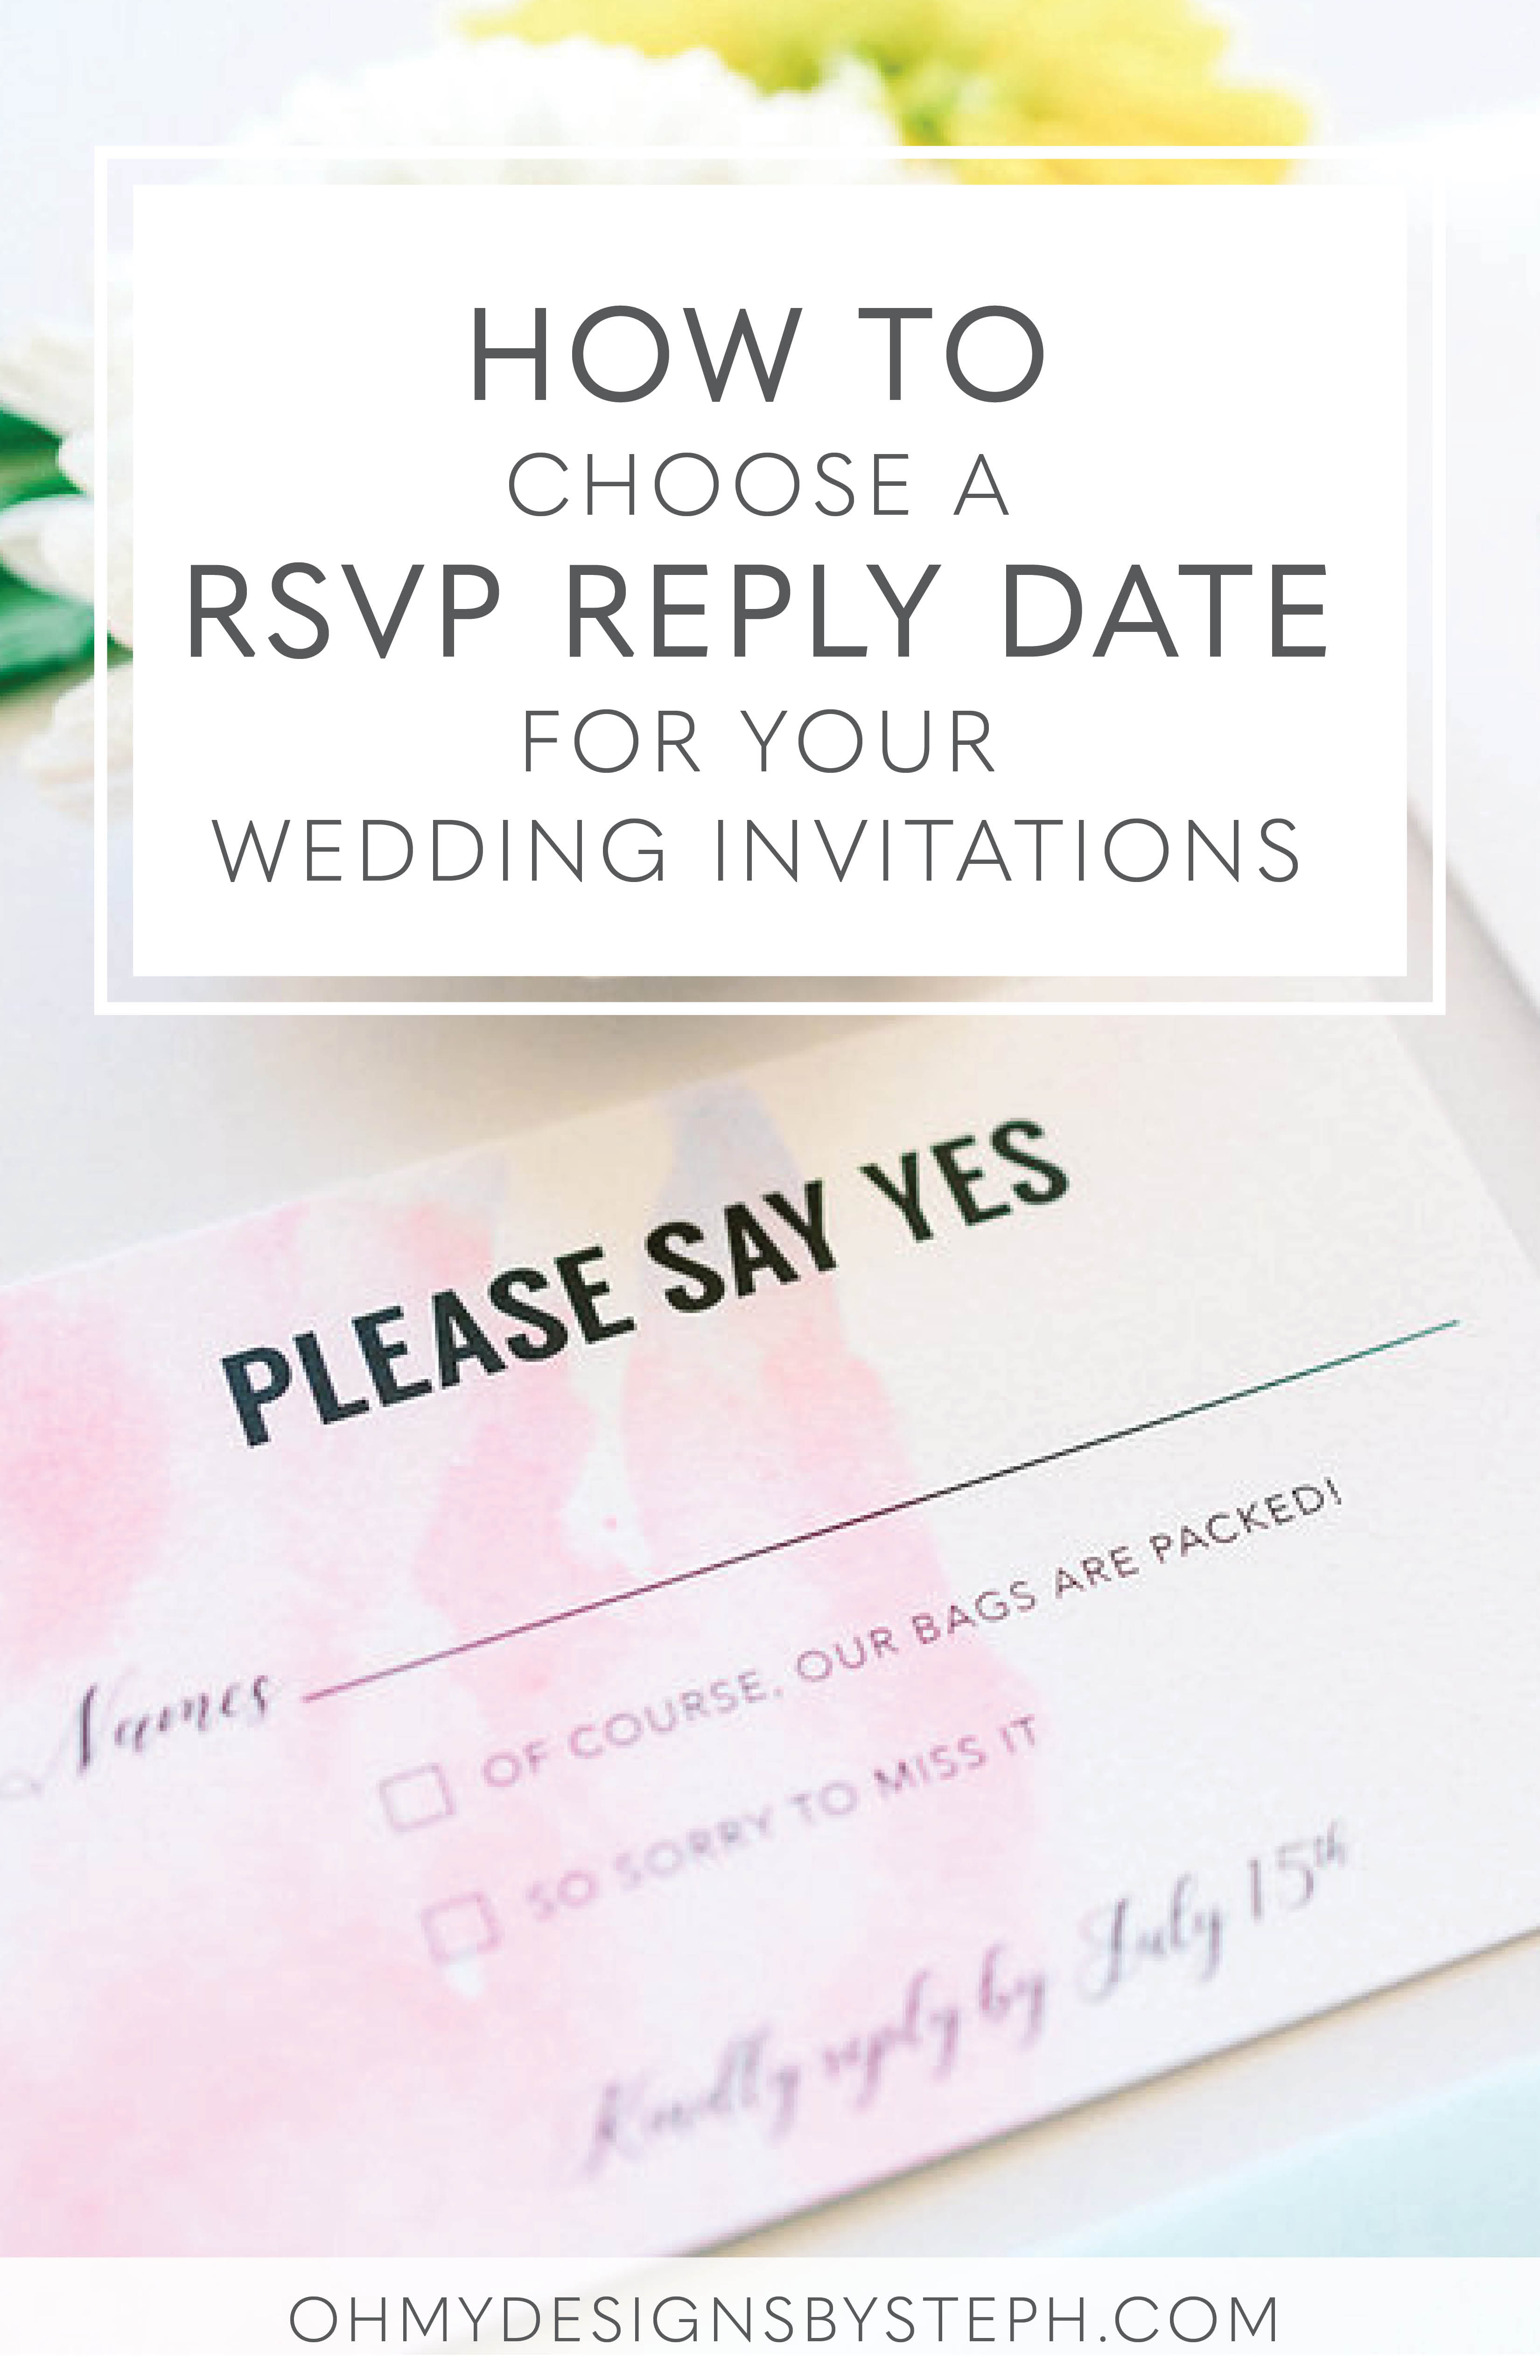 How To Choose The Rsvp Date For Your Wedding Invitations Oh My Designs By Steph